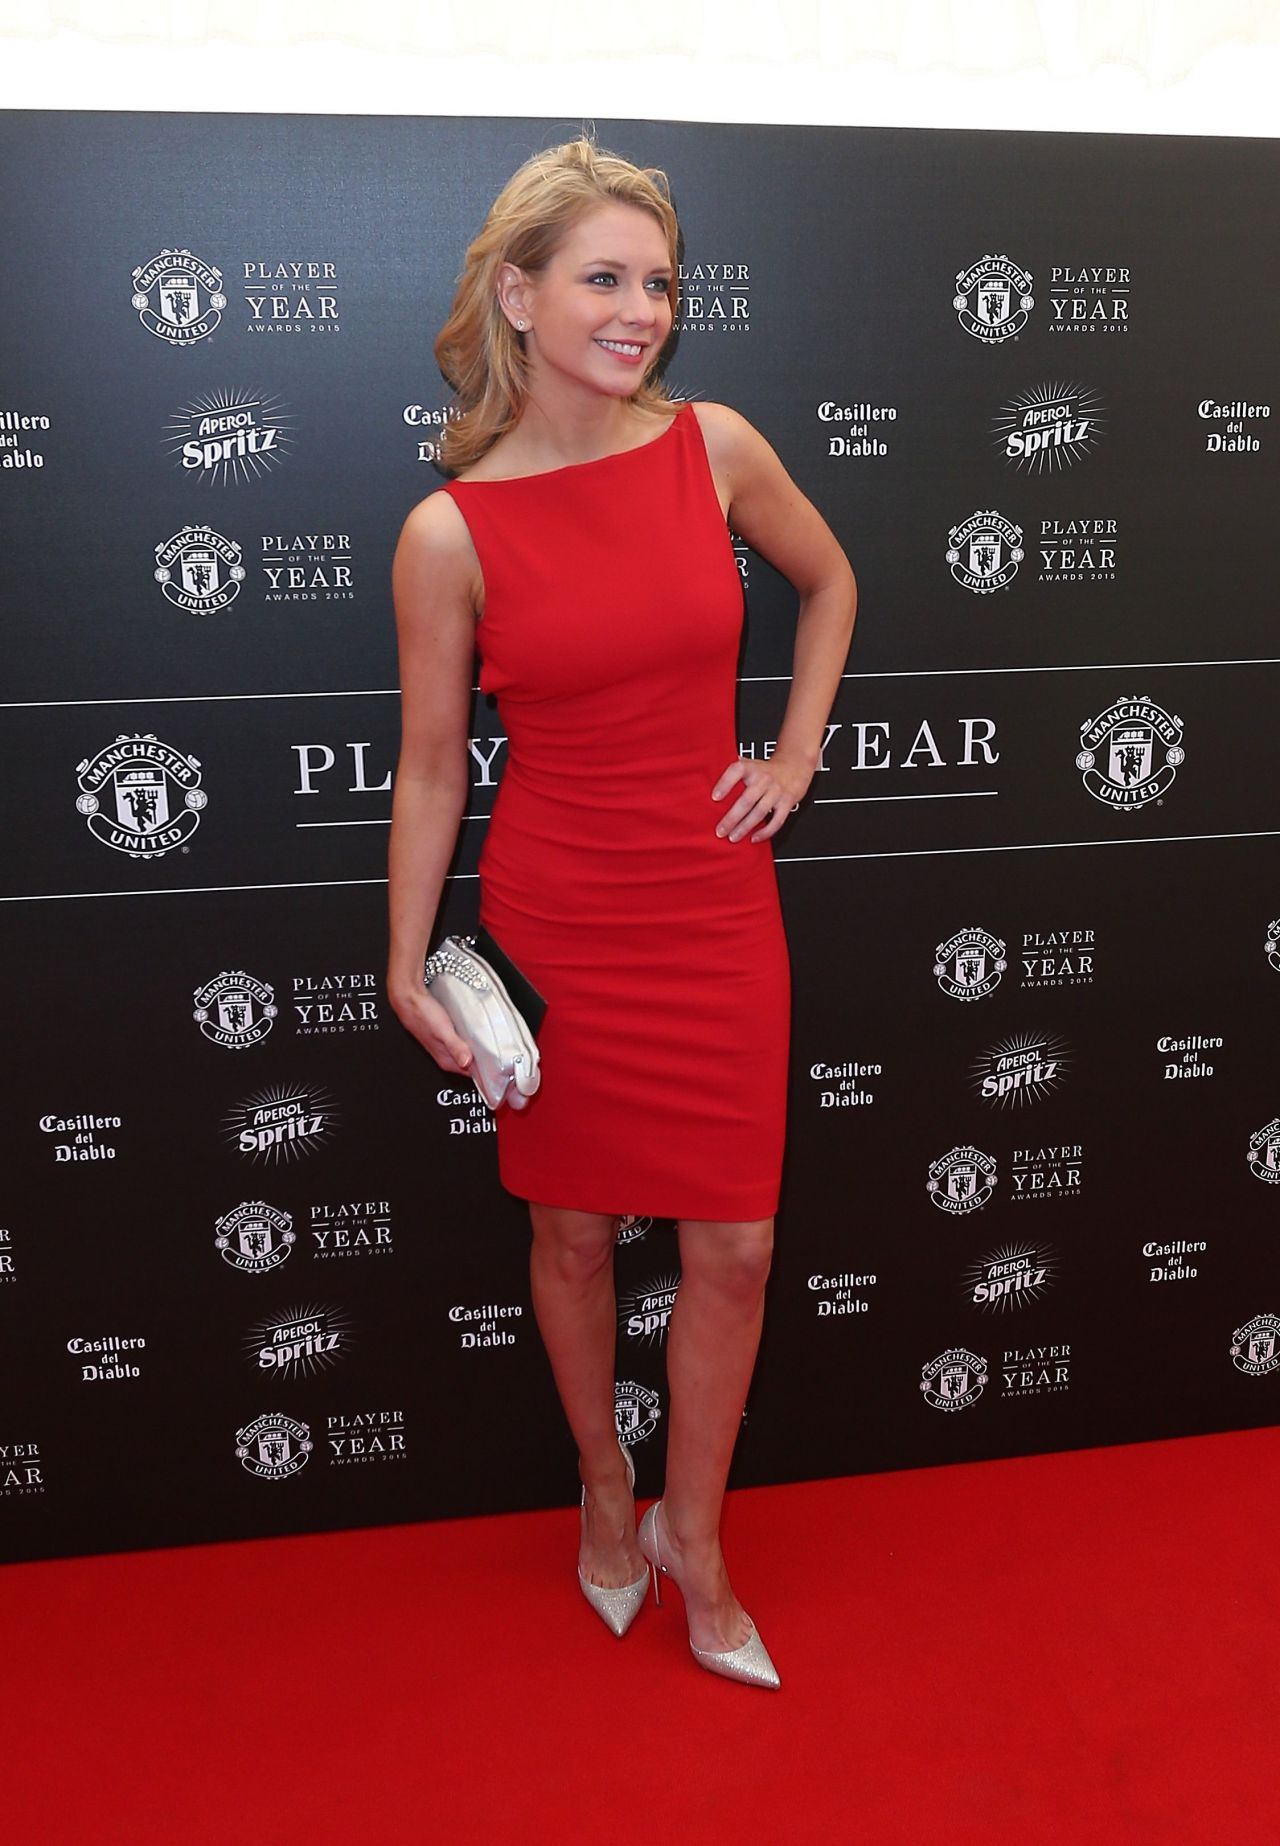 Rachel Riley 2015 Manchester United Player Of The Year